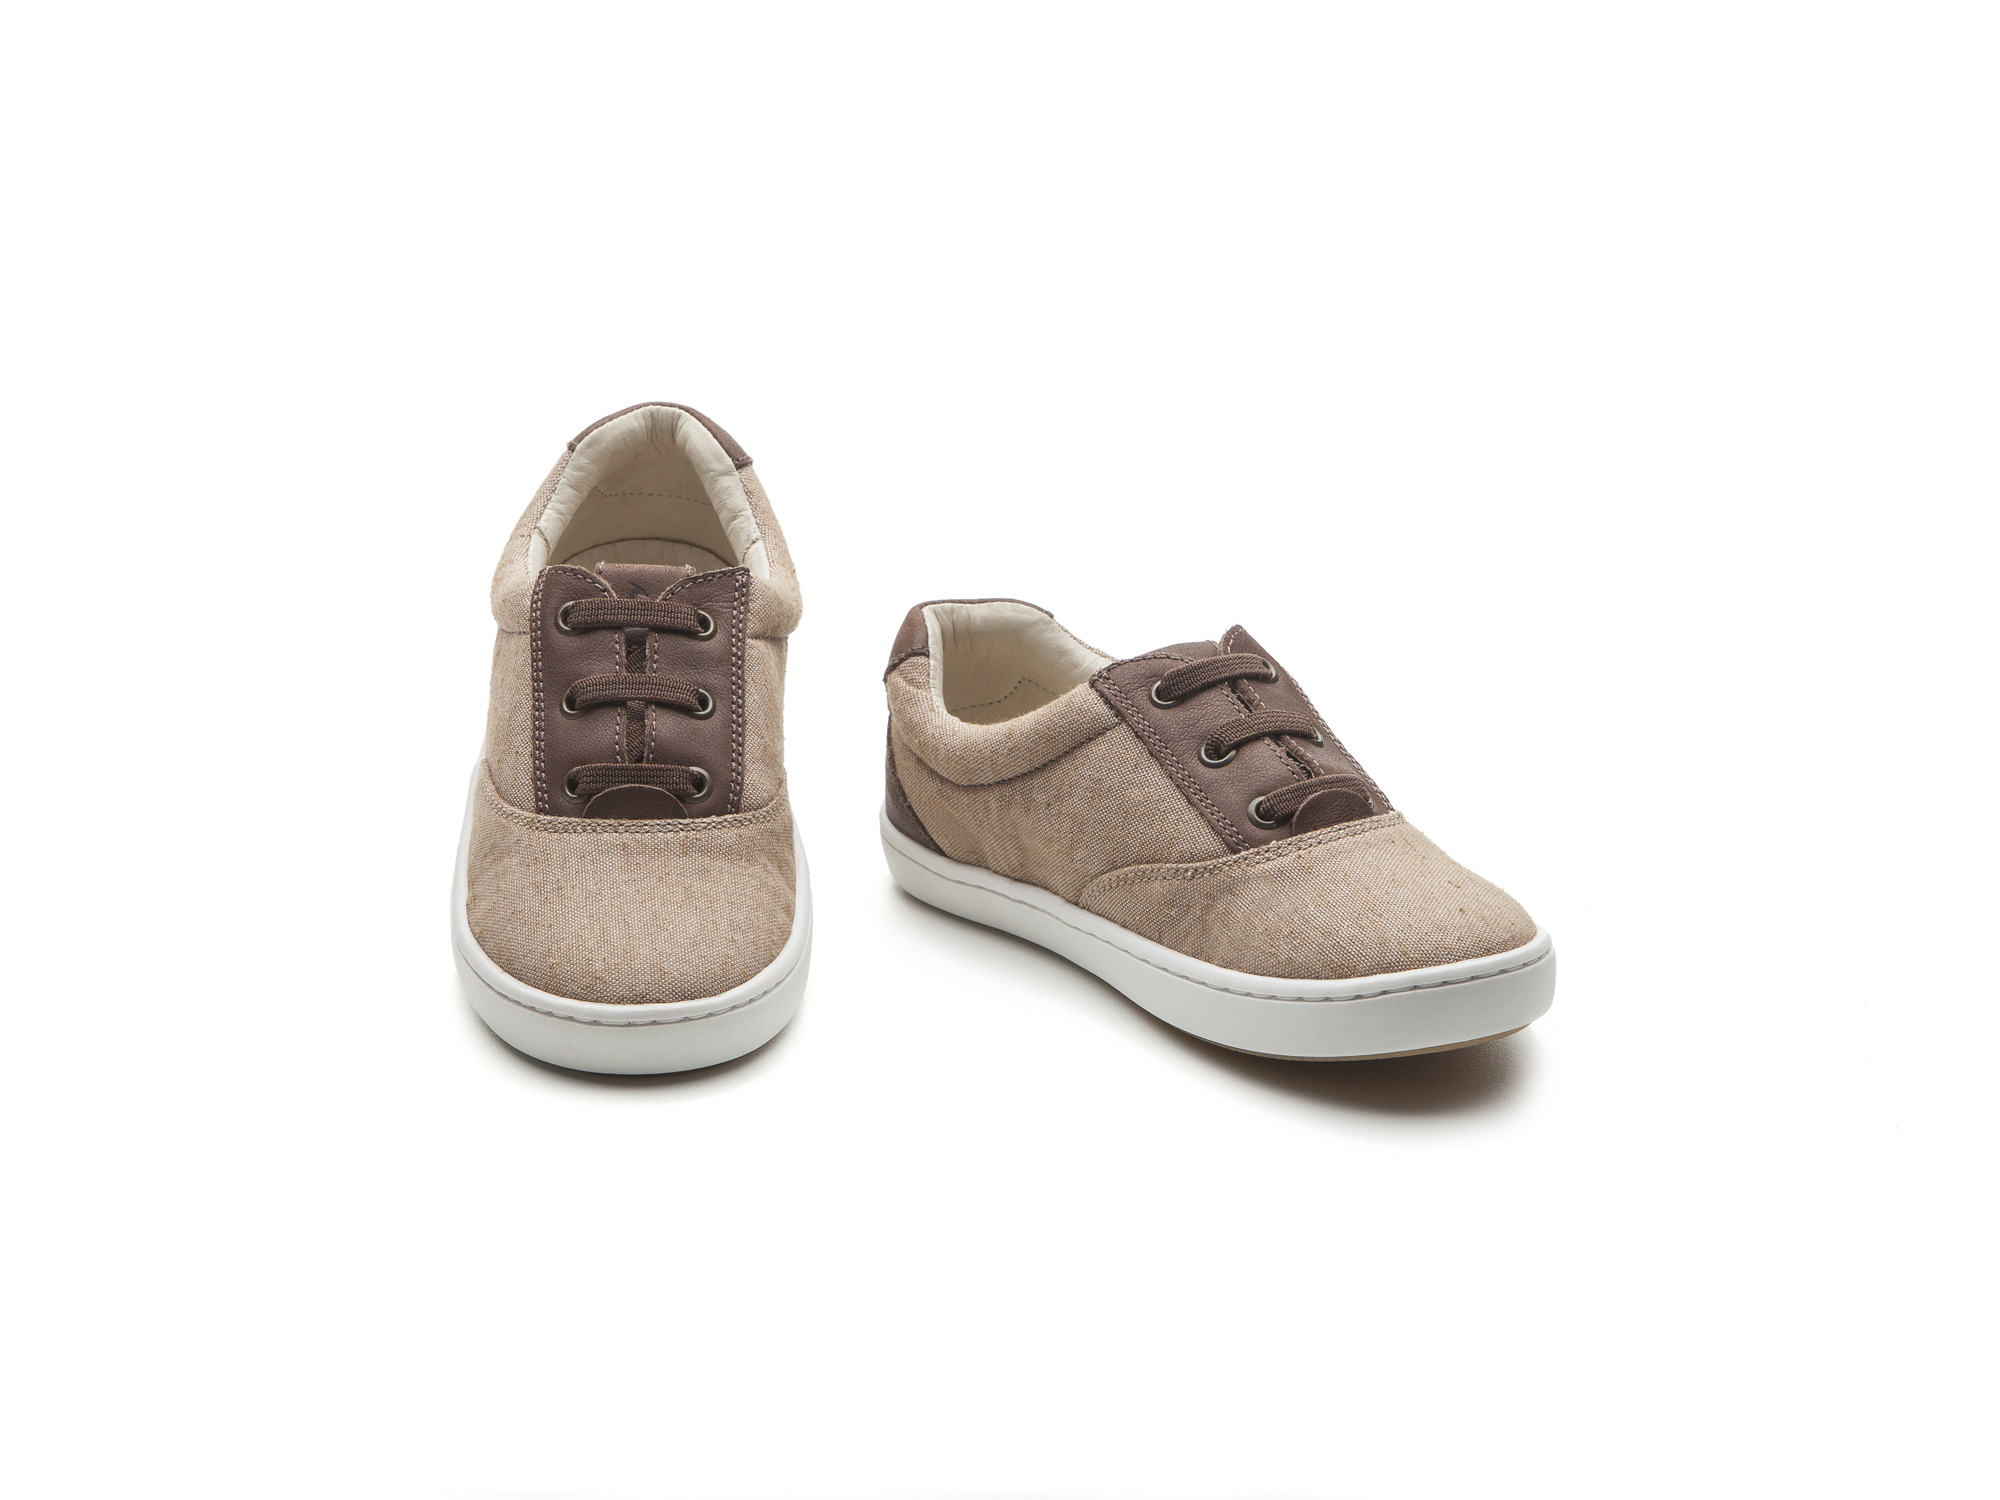 Tênis Garb Kraft Canvas/ Old Brown Junior 4 à 8 anos - 1